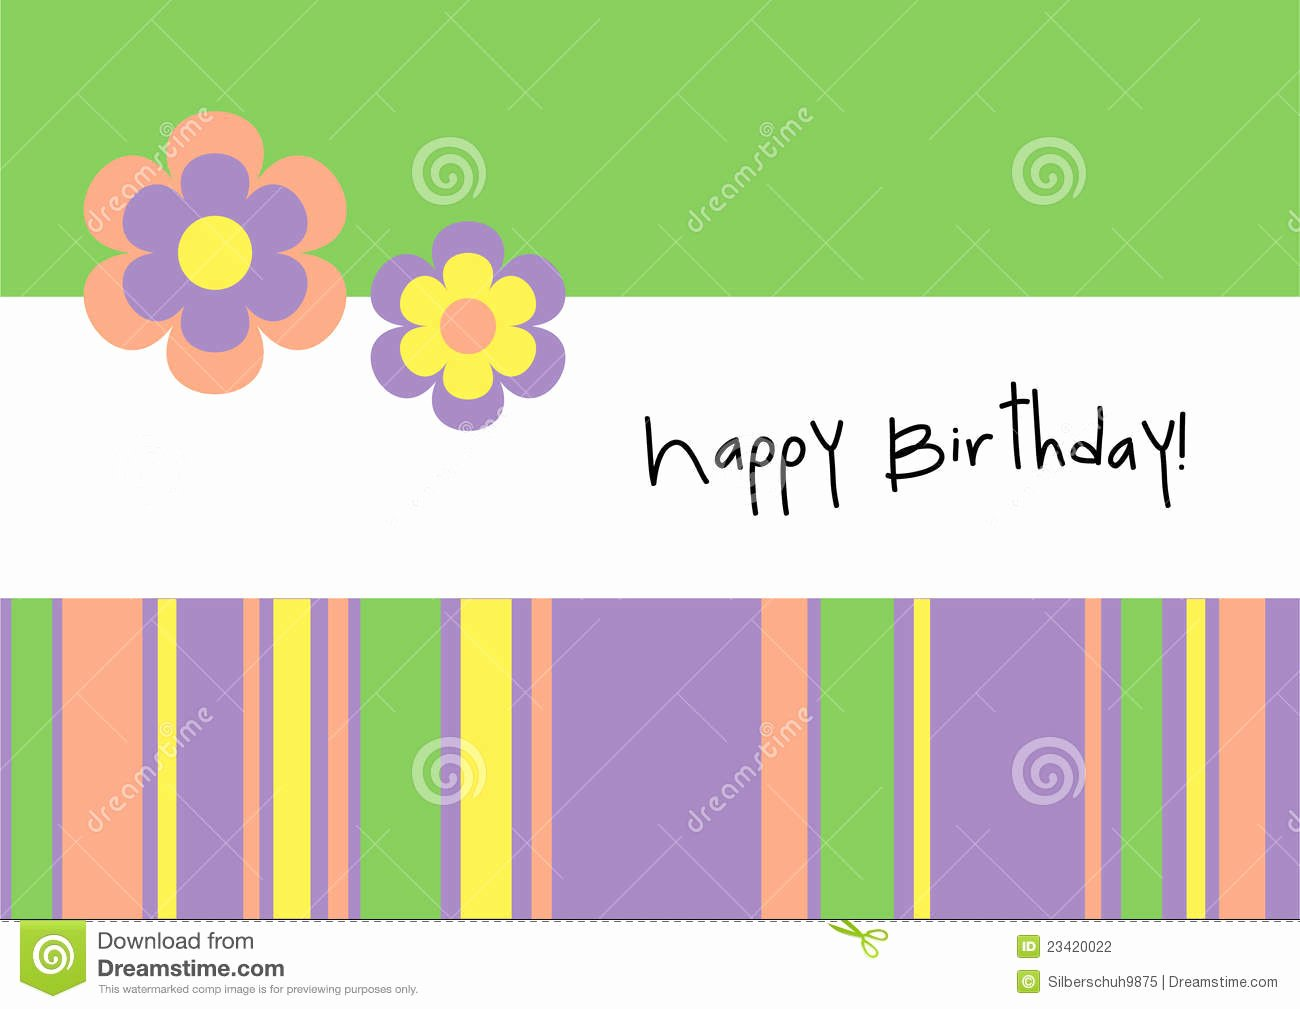 Birthday Card Template Word Inspirational Microsoft Word Birthday Card Template